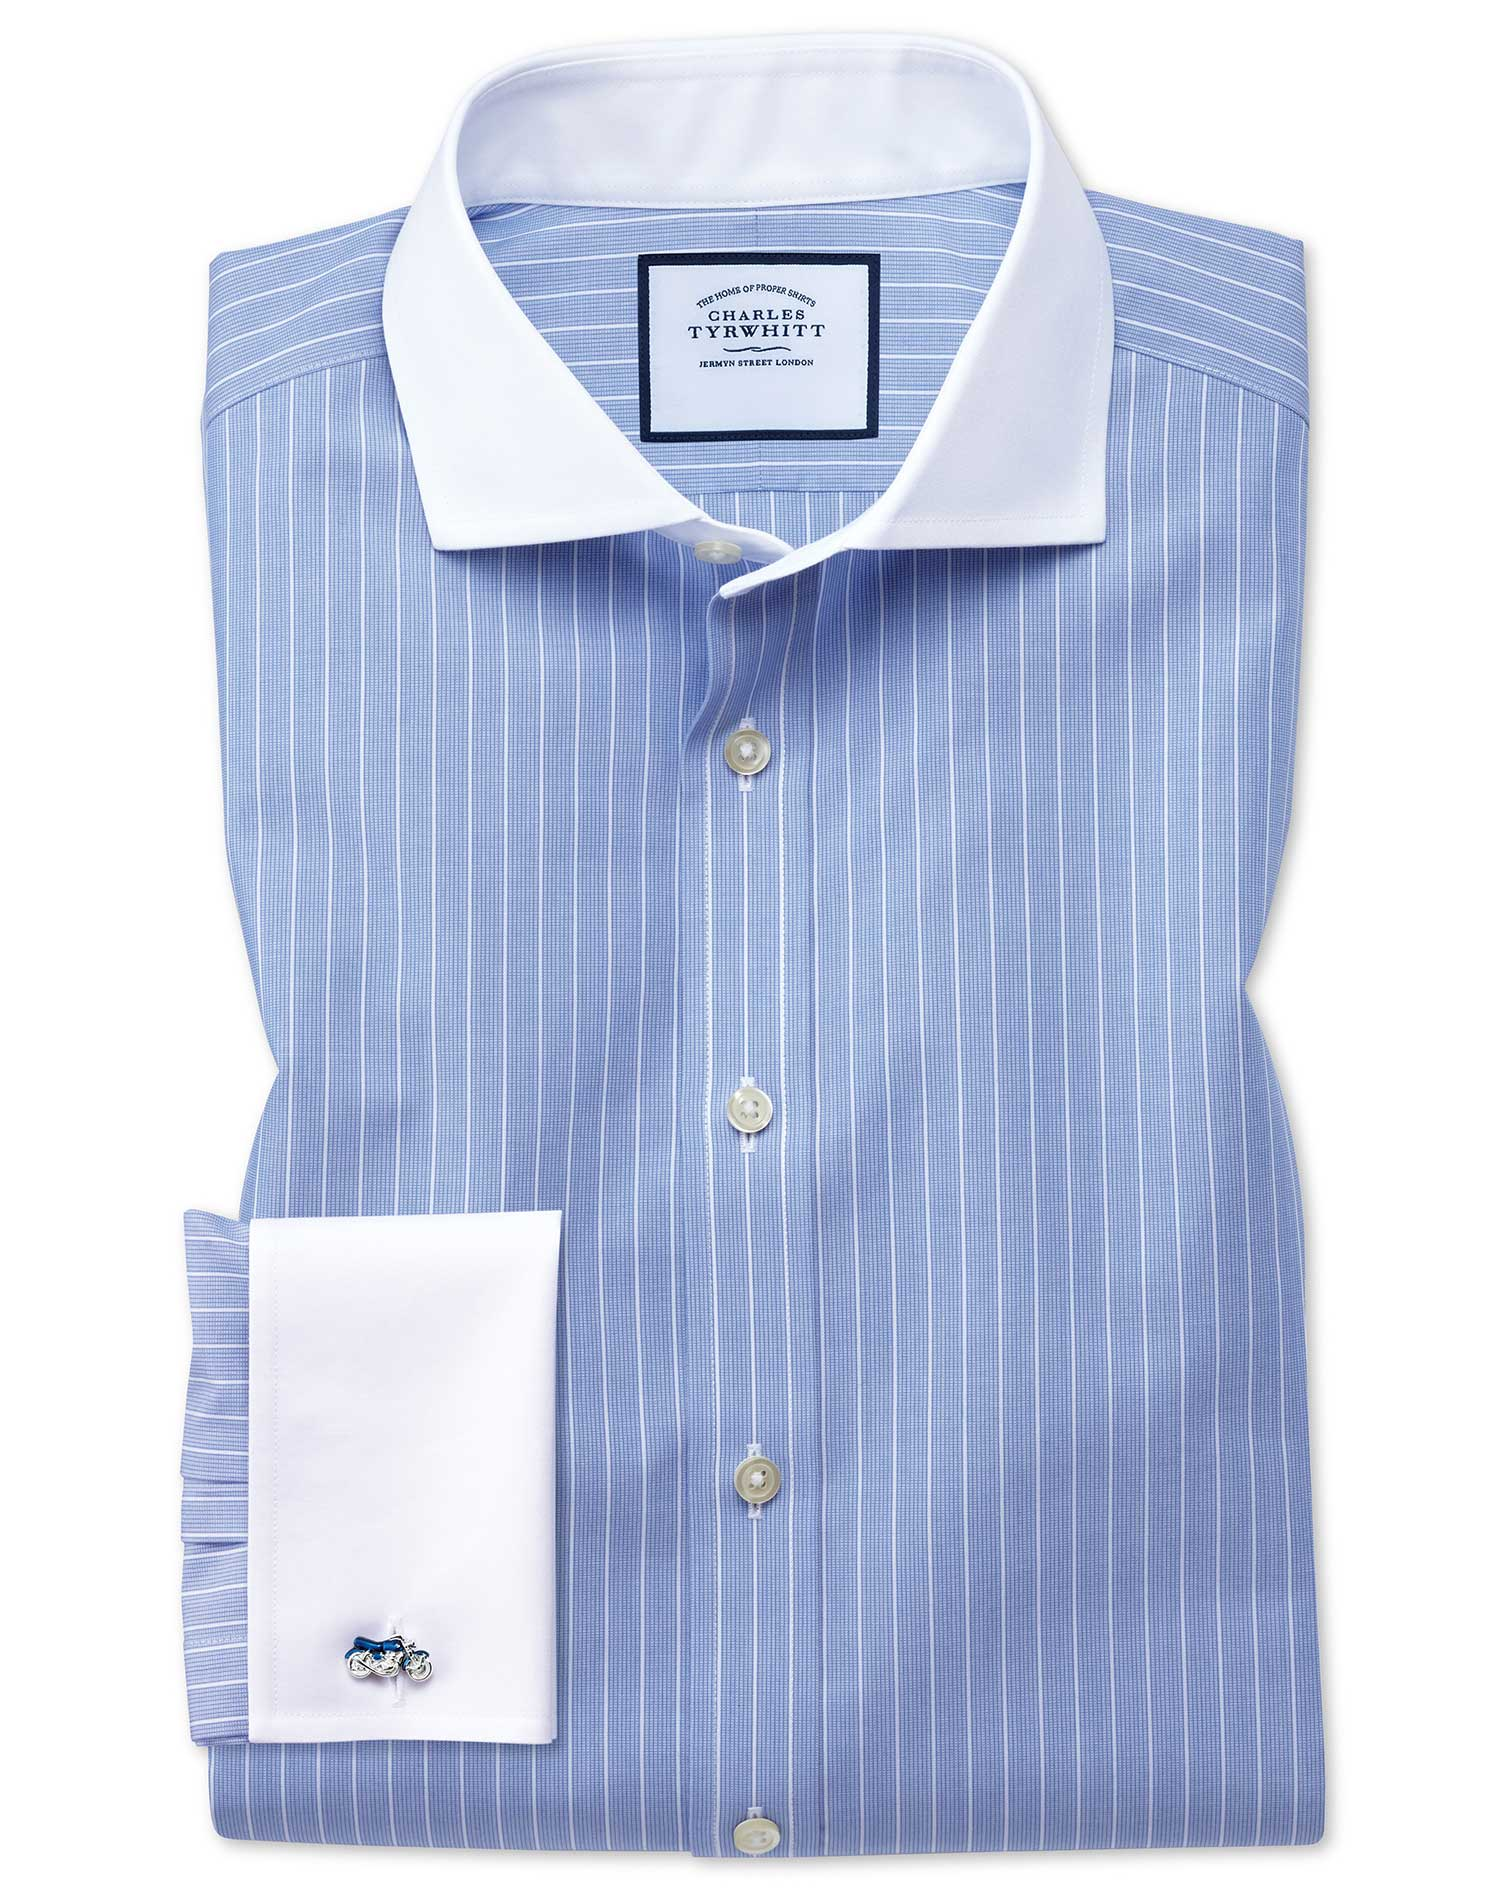 Slim Fit Cutaway Non-Iron Winchester Blue and White Cotton Formal Shirt Double Cuff Size 16.5/36 by